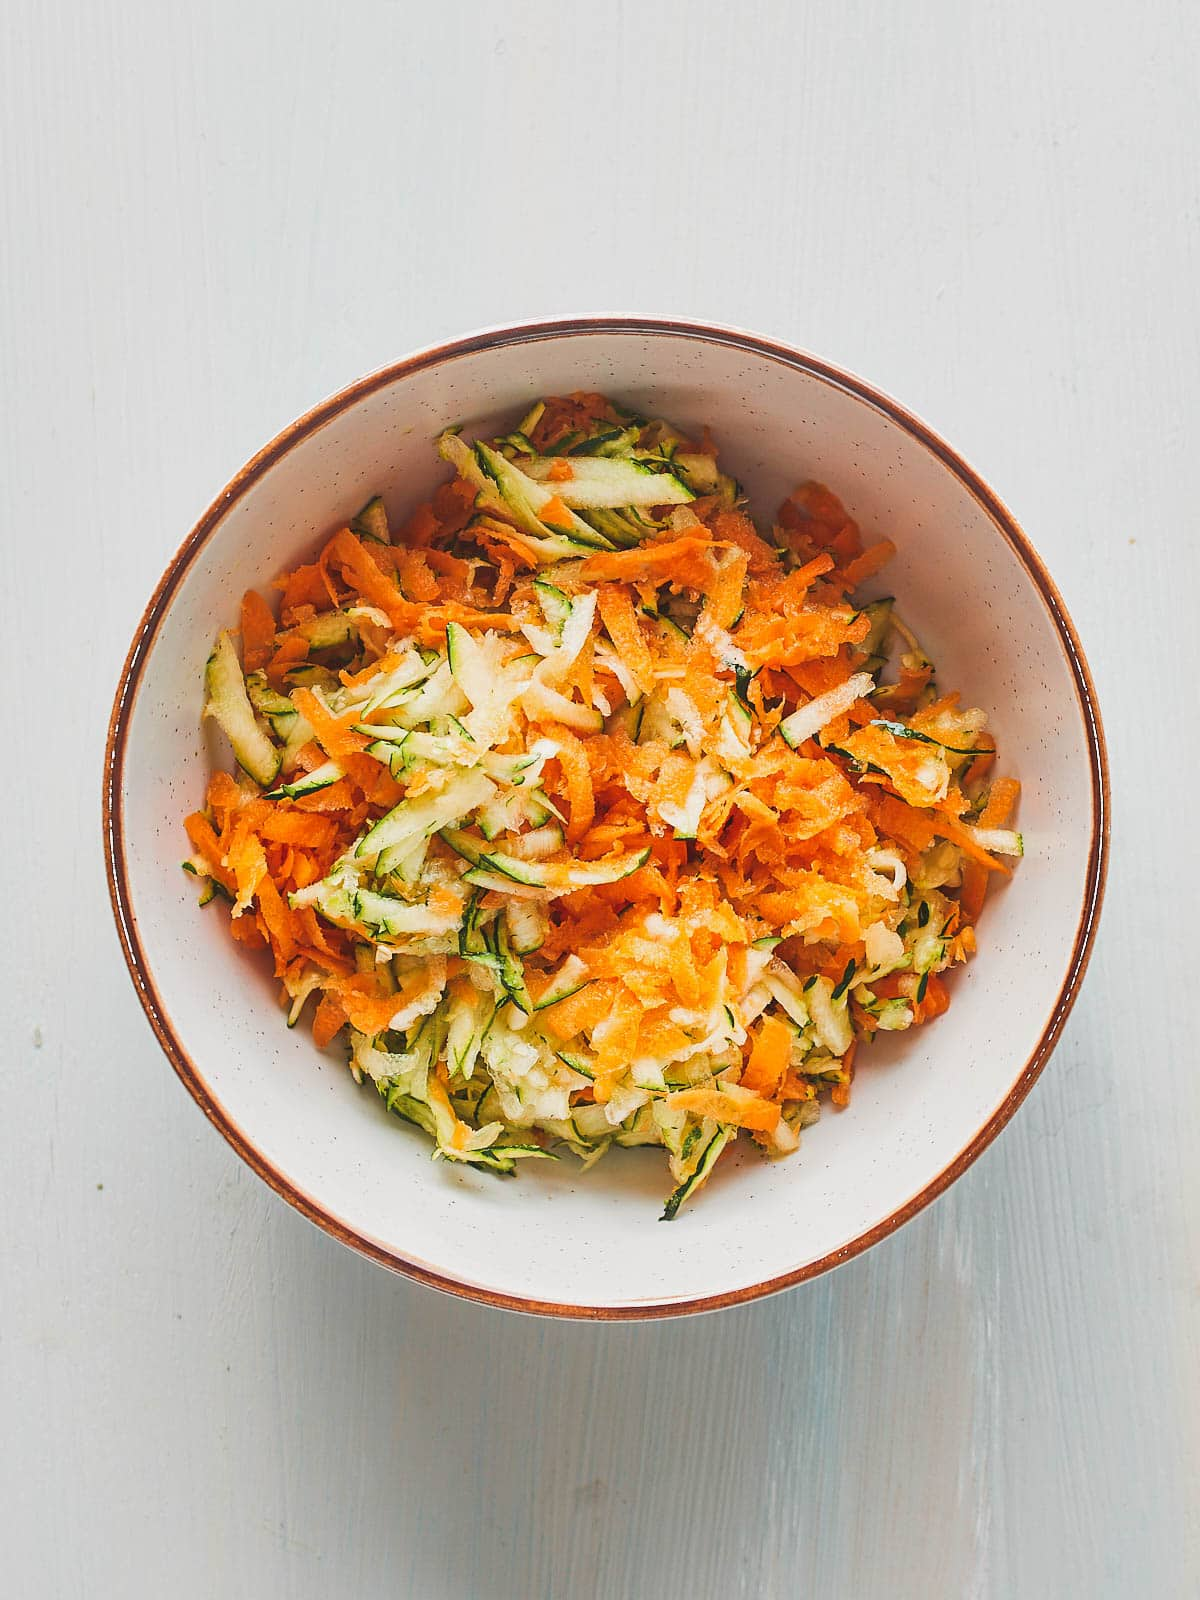 A bowl of grated carrot and zucchini